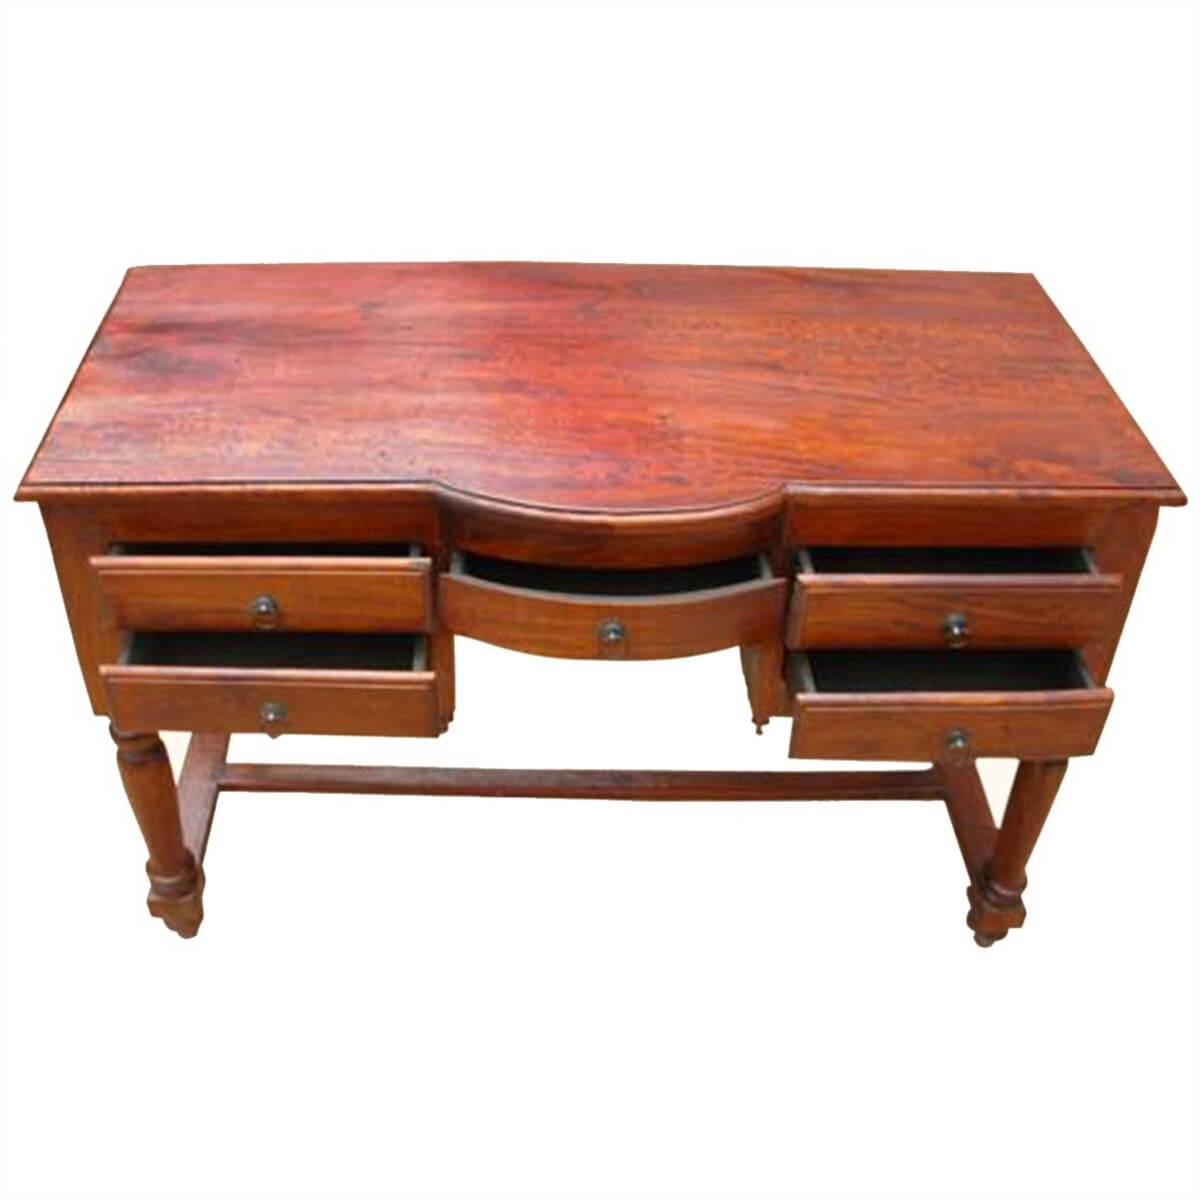 Superb img of  Room Desks Solid Wood Storage Drawers Writing Desk Console Table with #B48317 color and 1200x1200 pixels